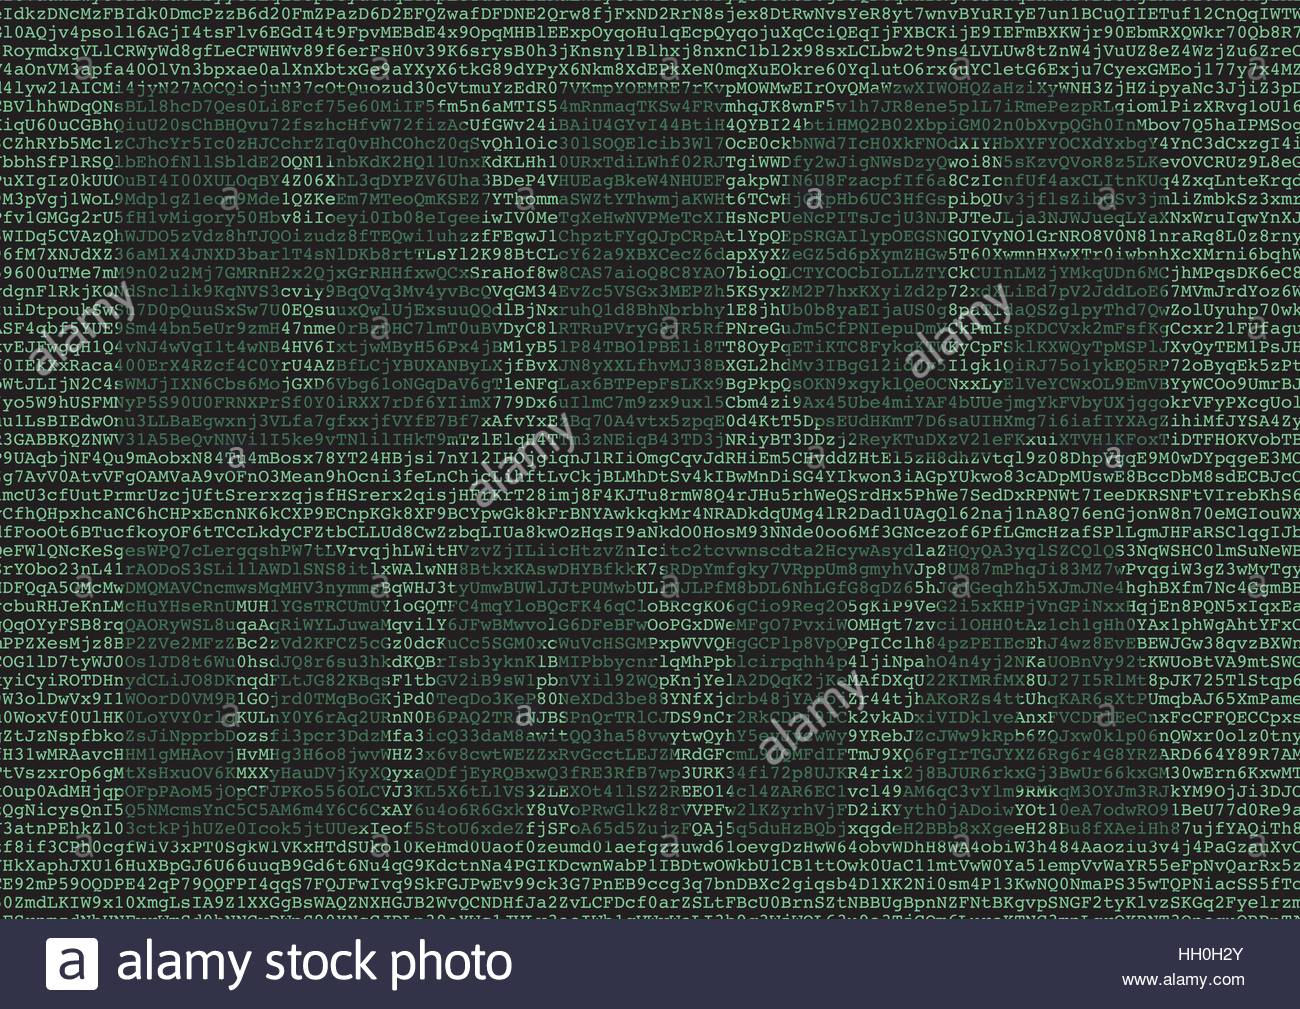 Big data abstract background. New business based in extraction of valuable data on large data sheets made with ETL - Stock Image